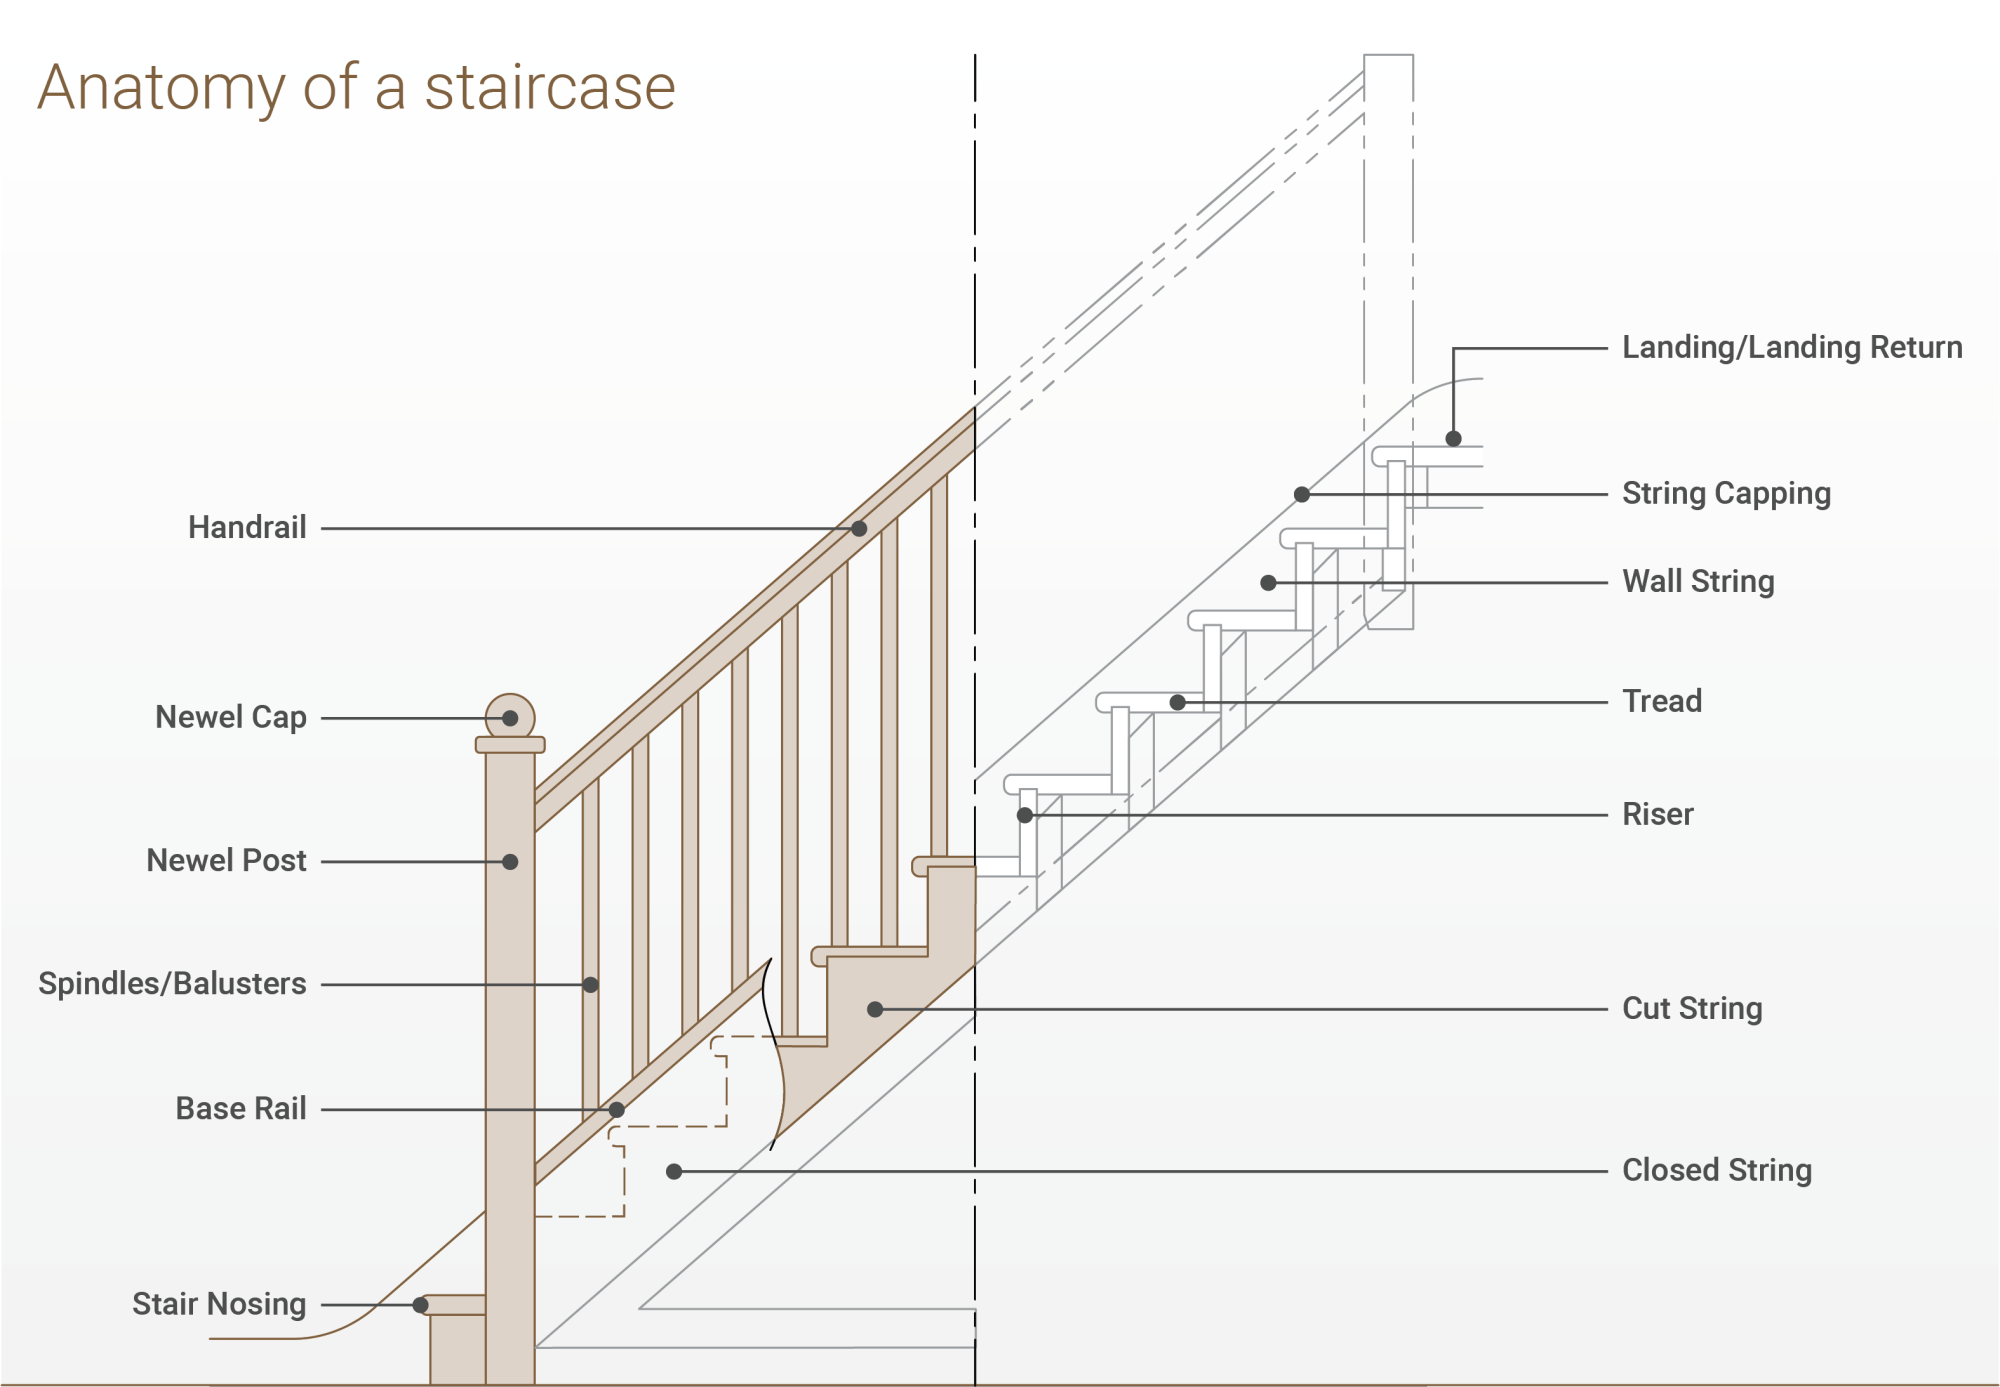 hight resolution of parts of a staircase explainedsj diagram staircase terminology png